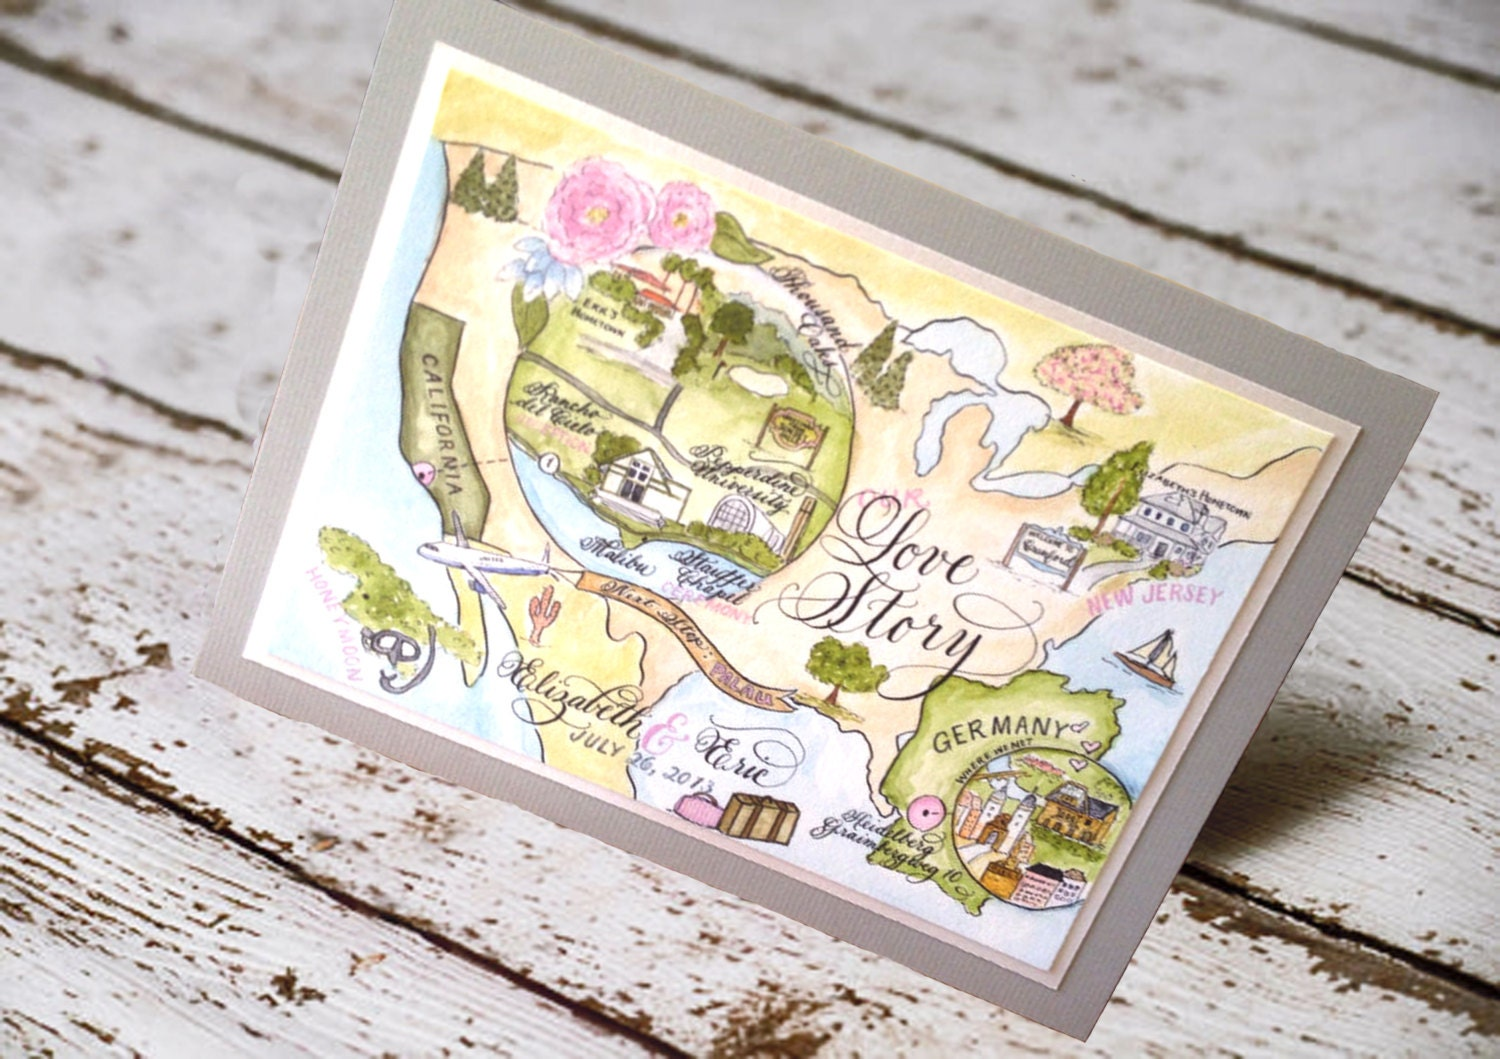 Painted Wedding Invitations: Map Wedding Invitation Love No. 7 Combe Magna